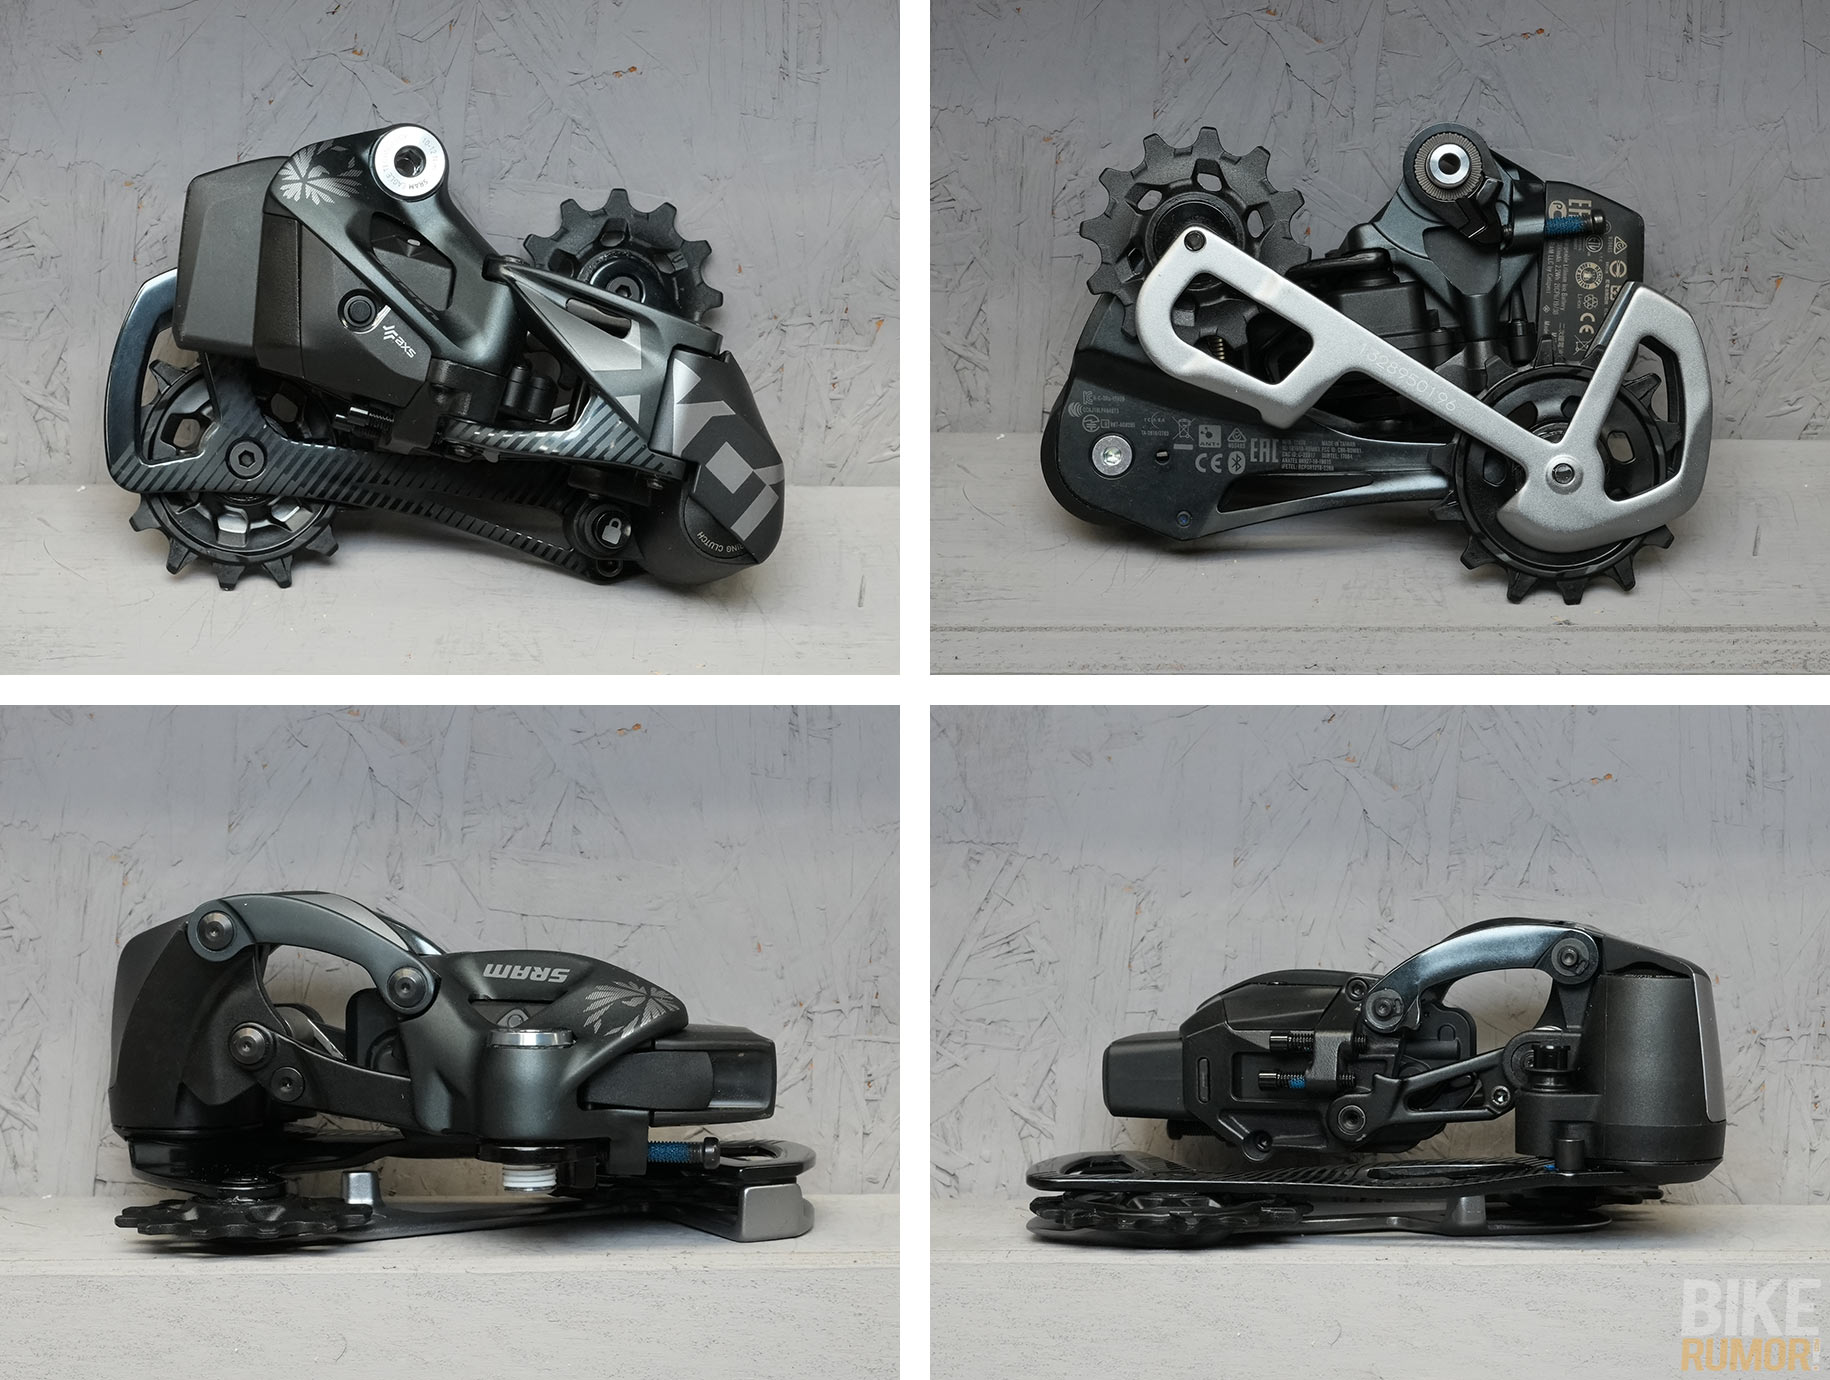 sram xo1 eagle axs wireless rear derailleur comparison